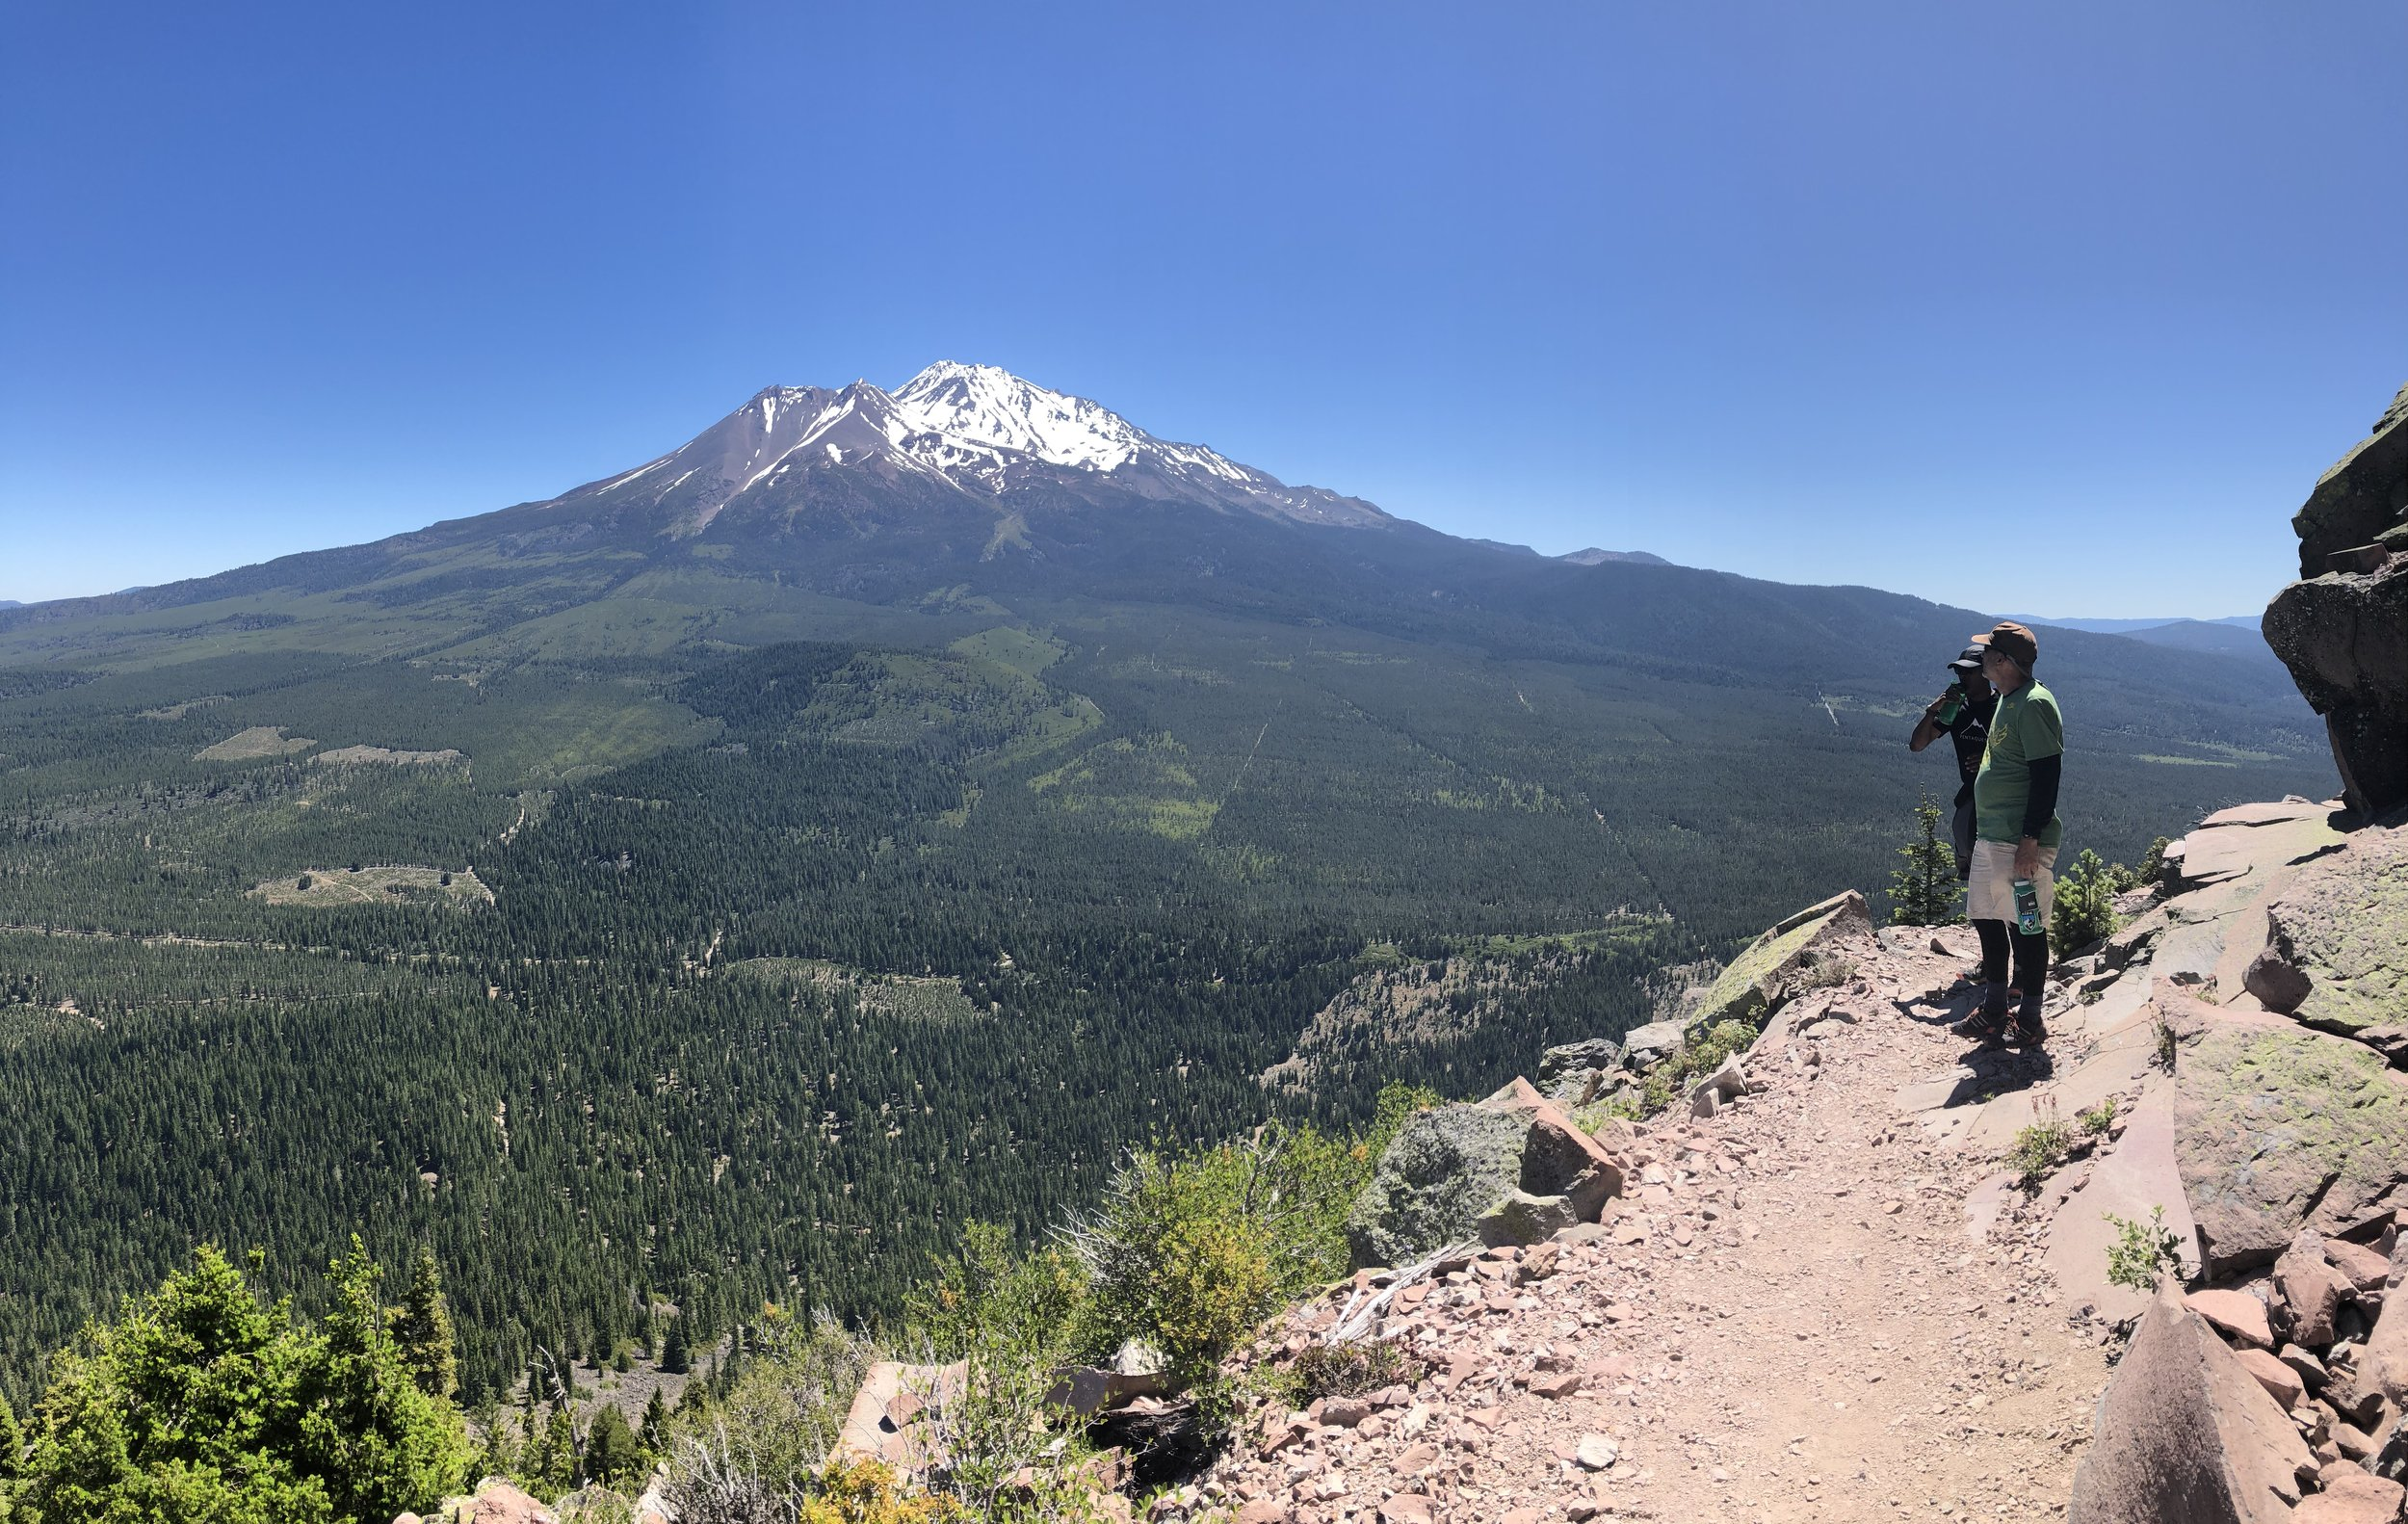 Nearing the top with Mt. Shasta in the distance.